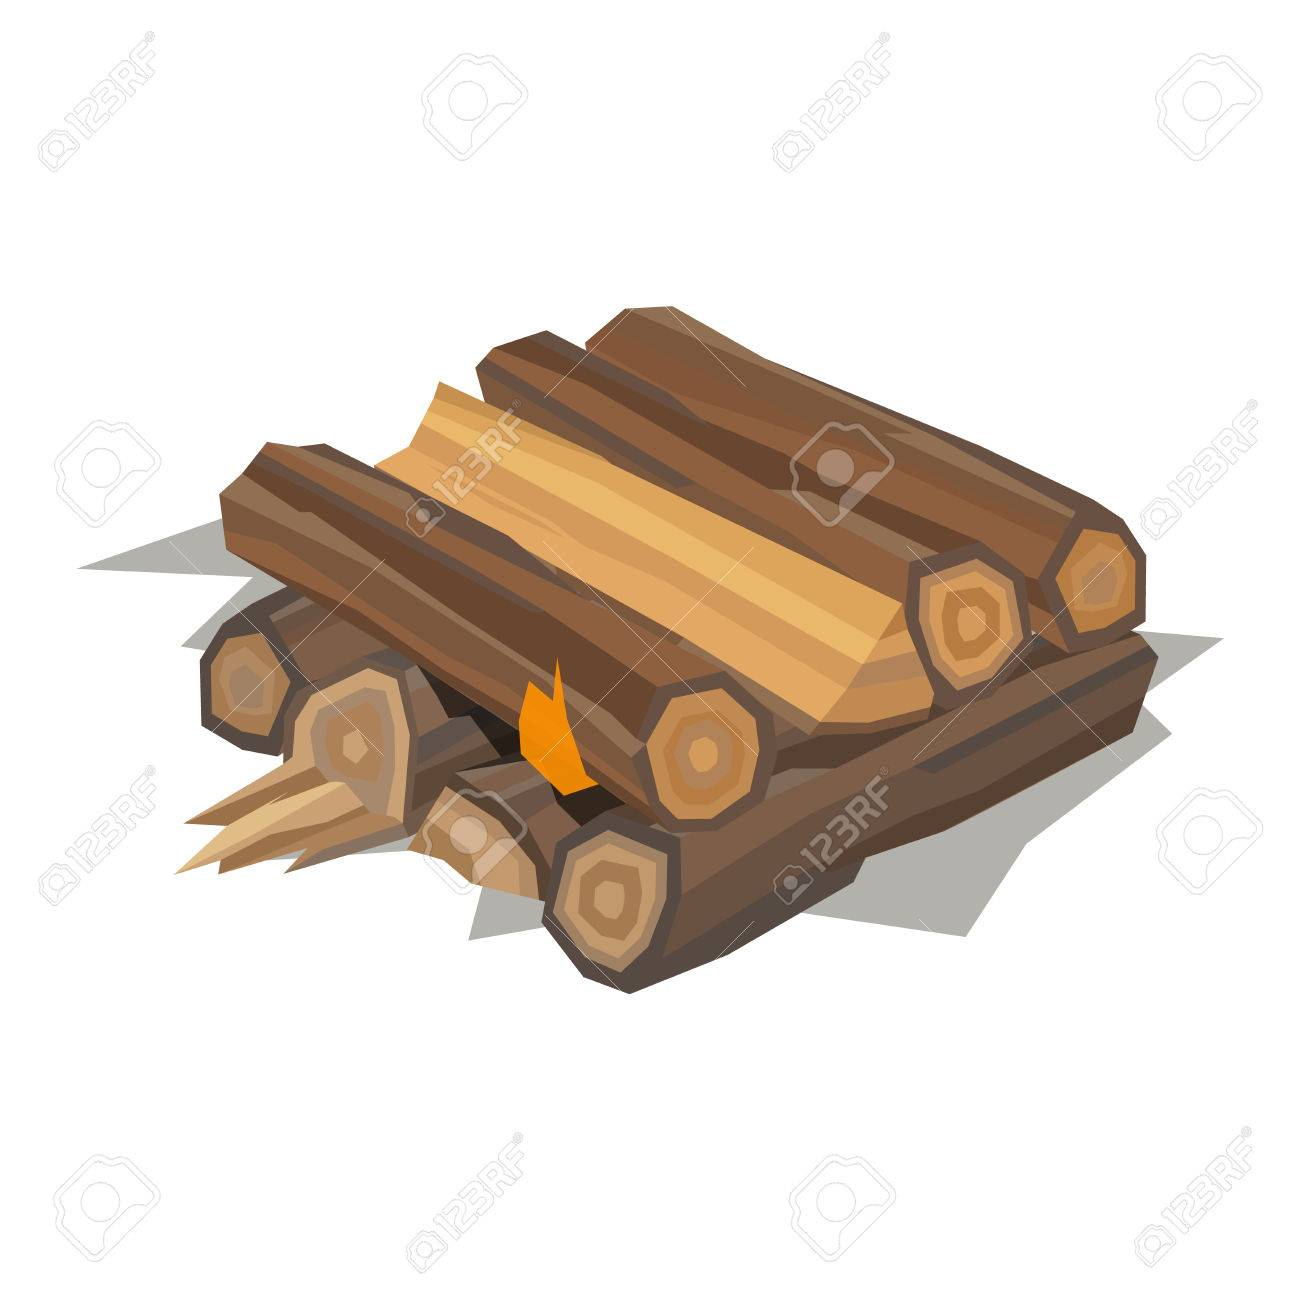 Firewood Fireplace For Bonfire Stack Vector Wooden Material